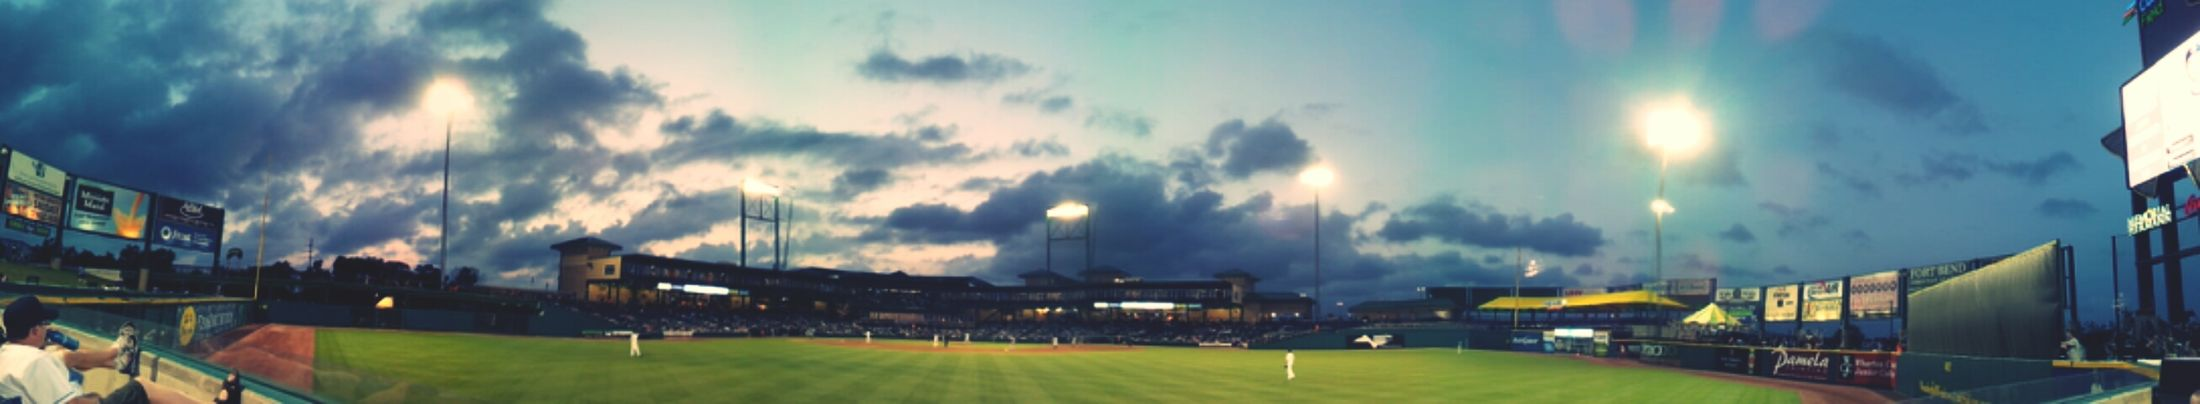 Kicking it at the Skeeters Game sipping on some Coke & Crown.